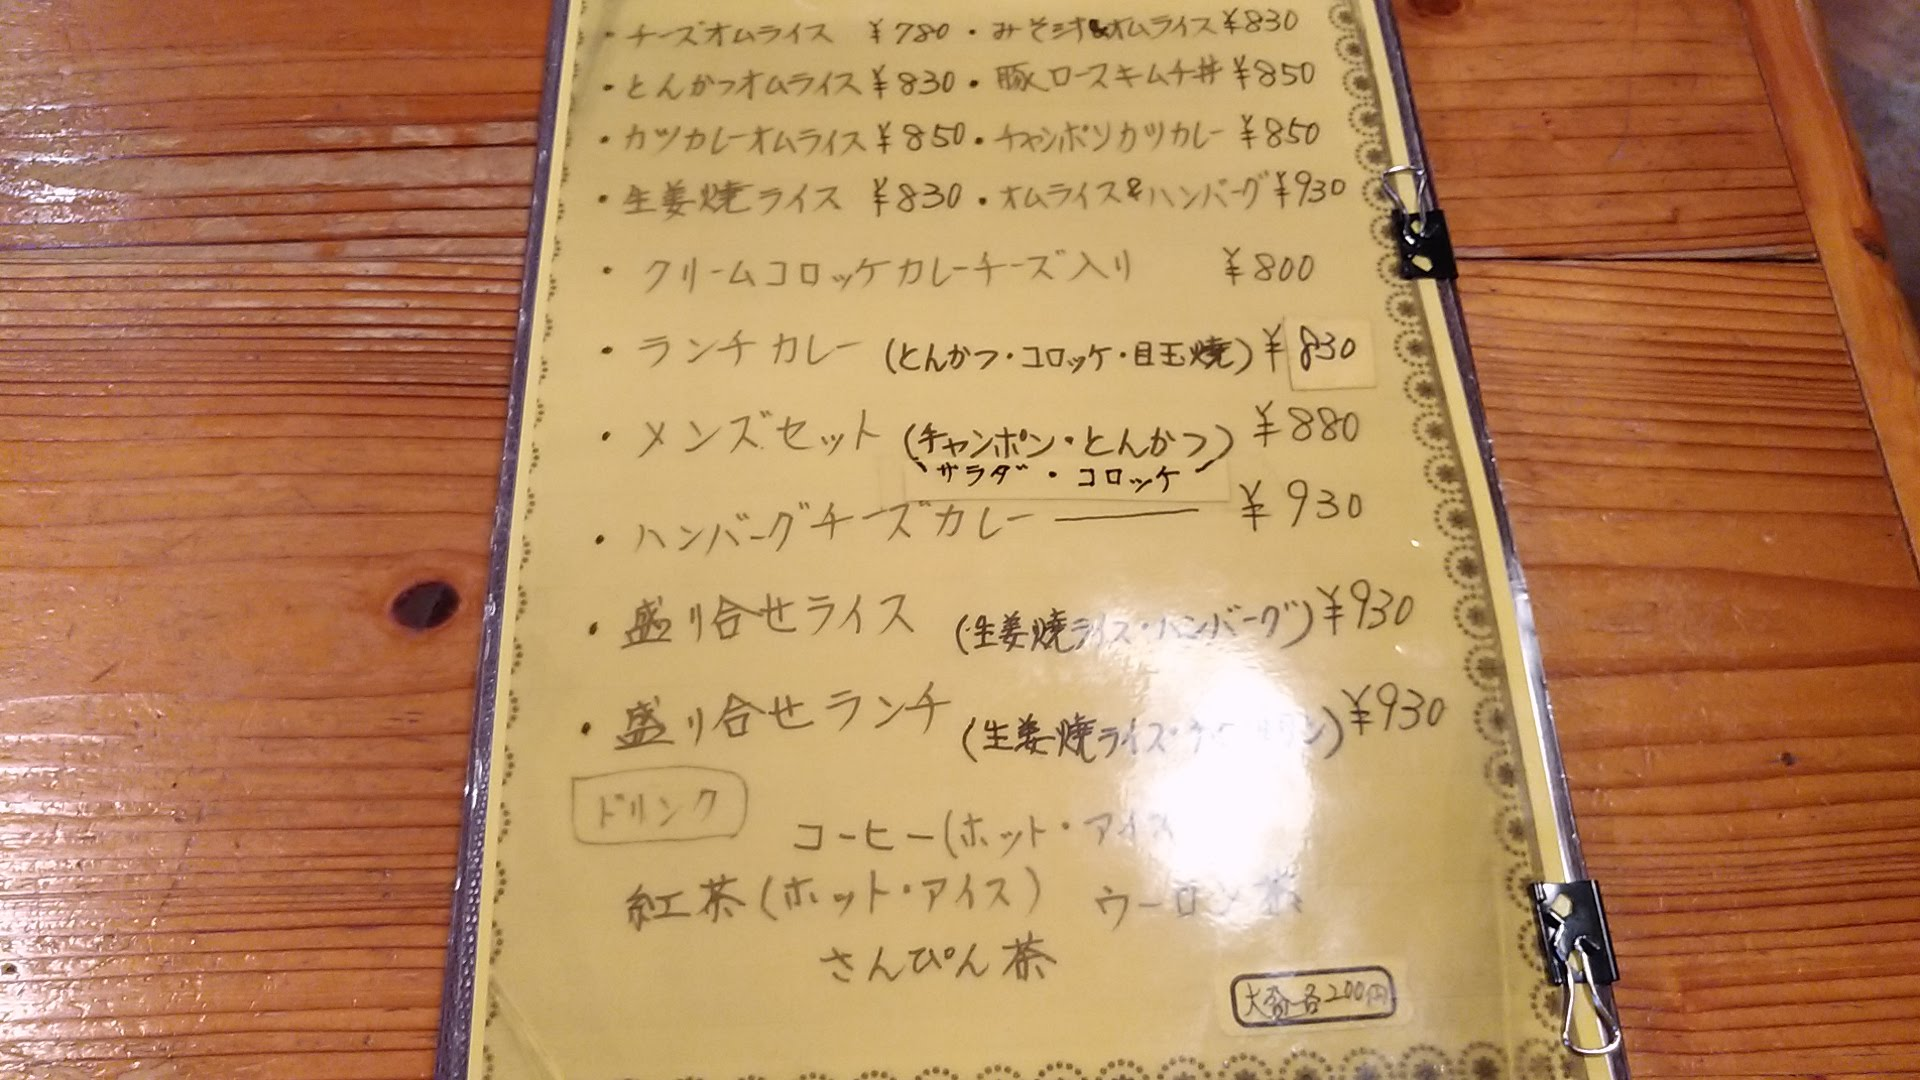 The menu of the cafe crystal 1